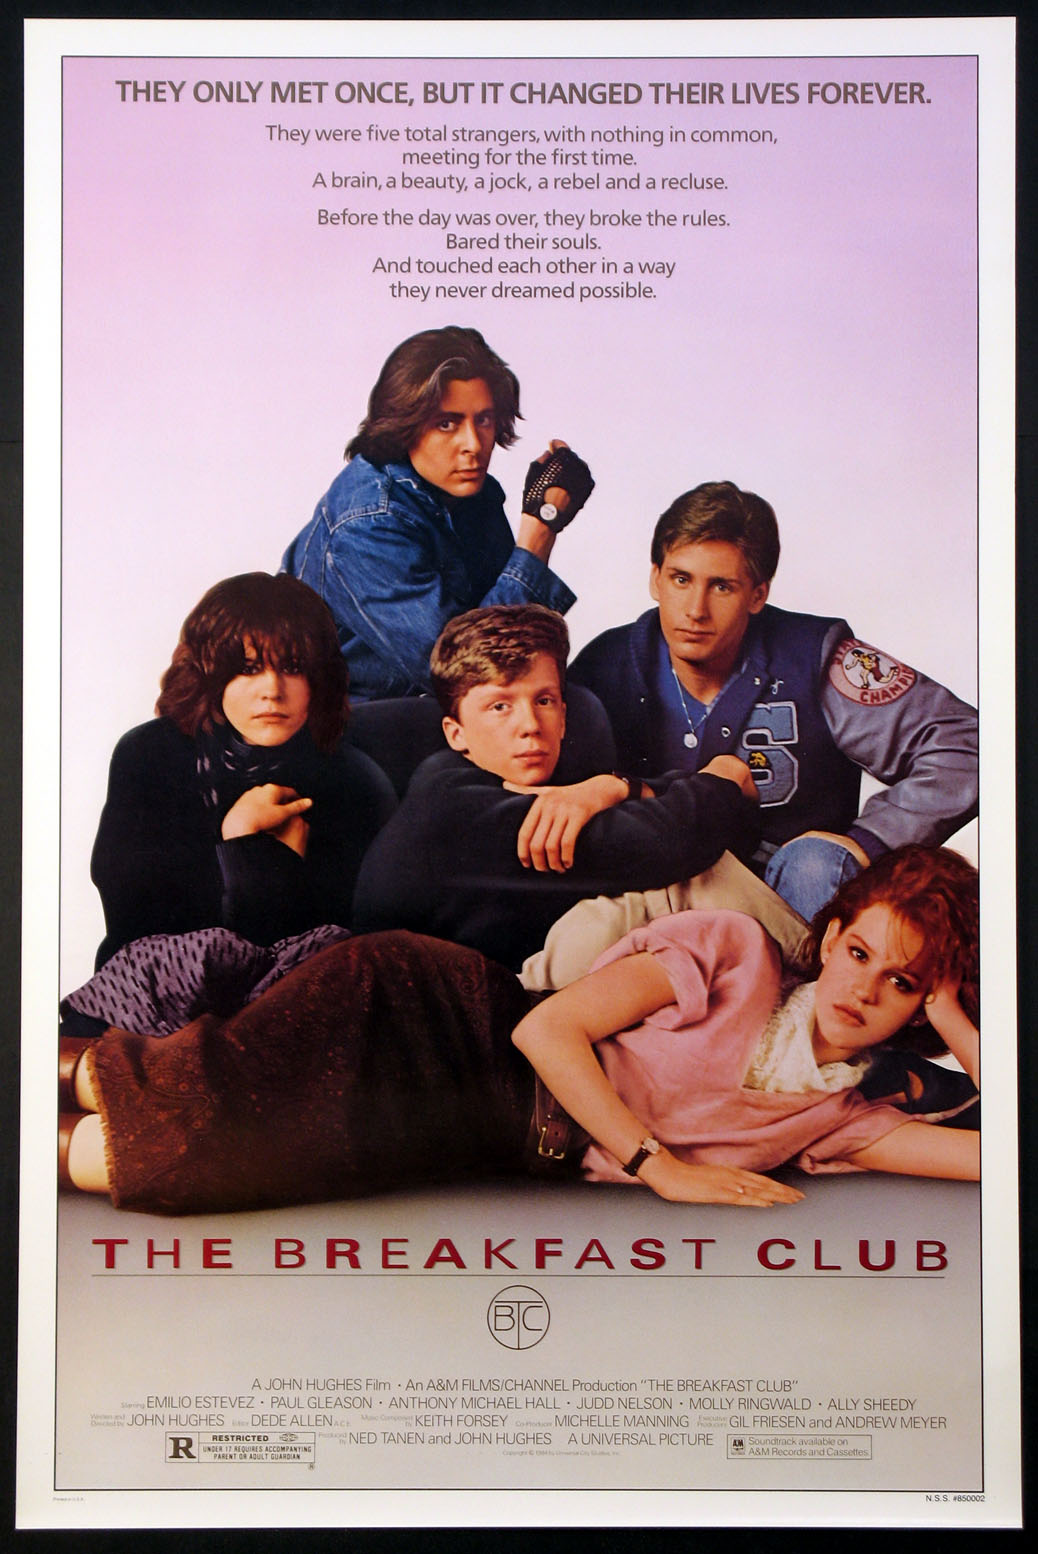 BREAKFAST CLUB, THE (The Breakfast Club) @ FilmPosters.com